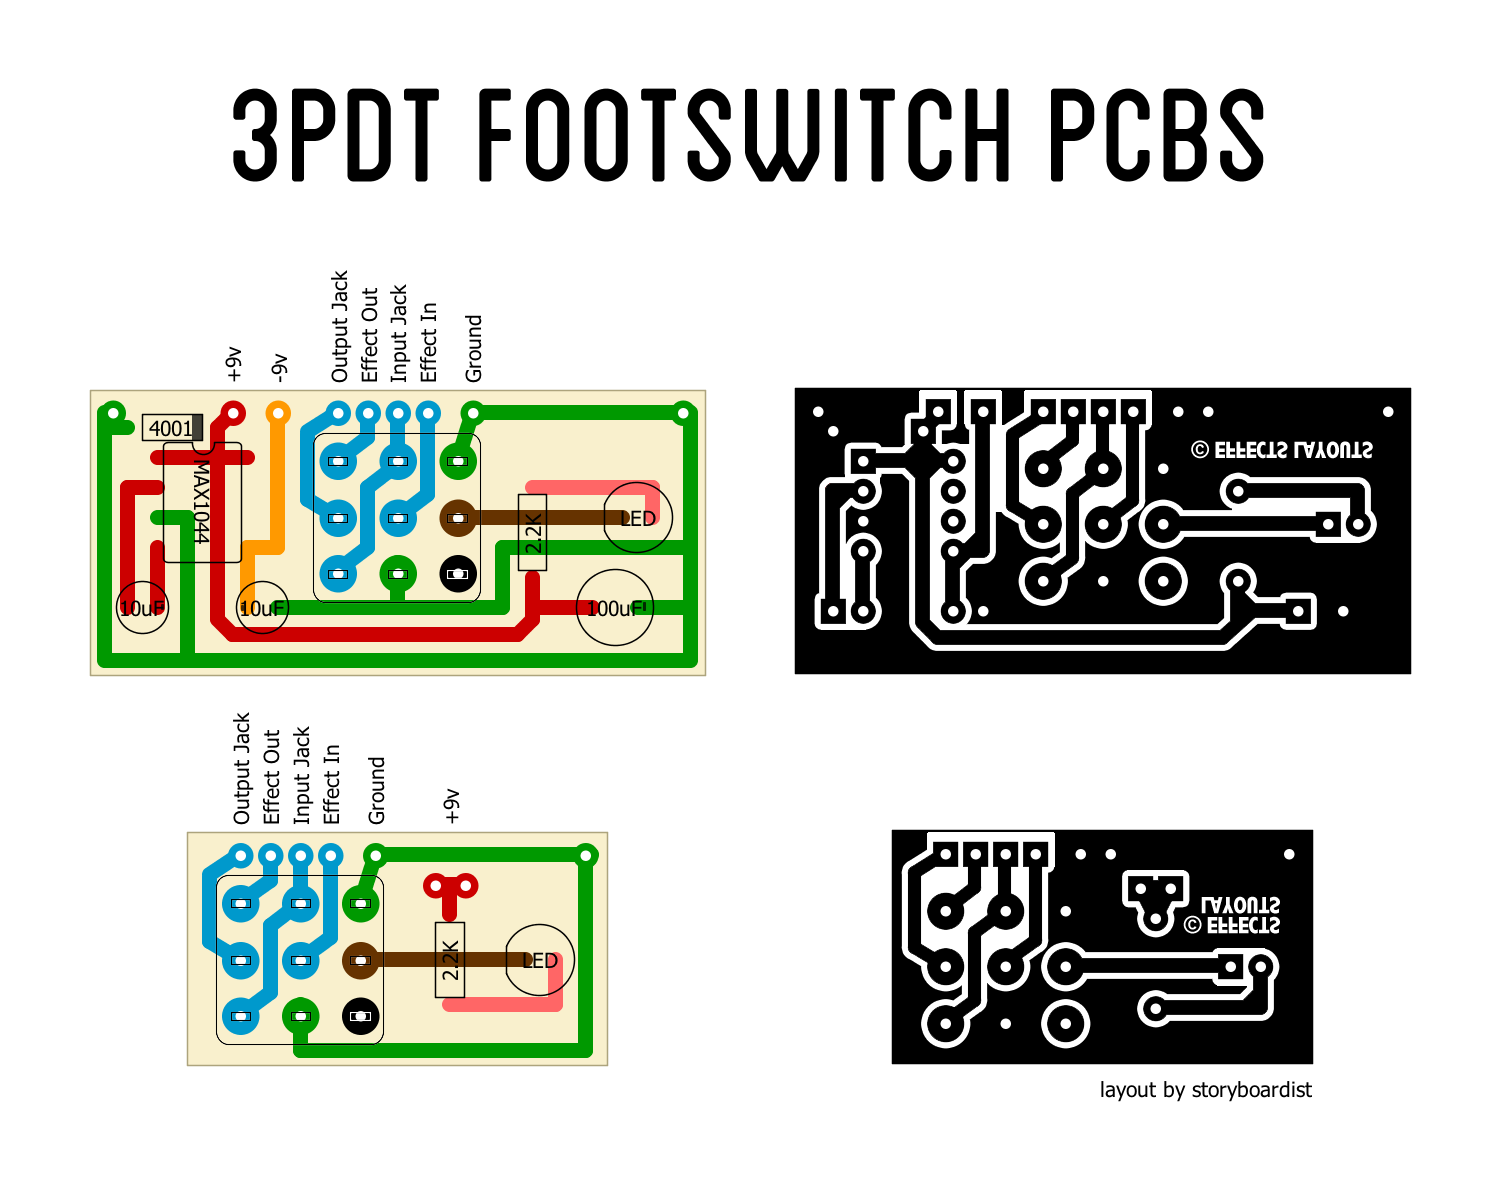 medium resolution of printed circuit board layout for 3pdt bypass system with max1044 based charge pump for positive ground